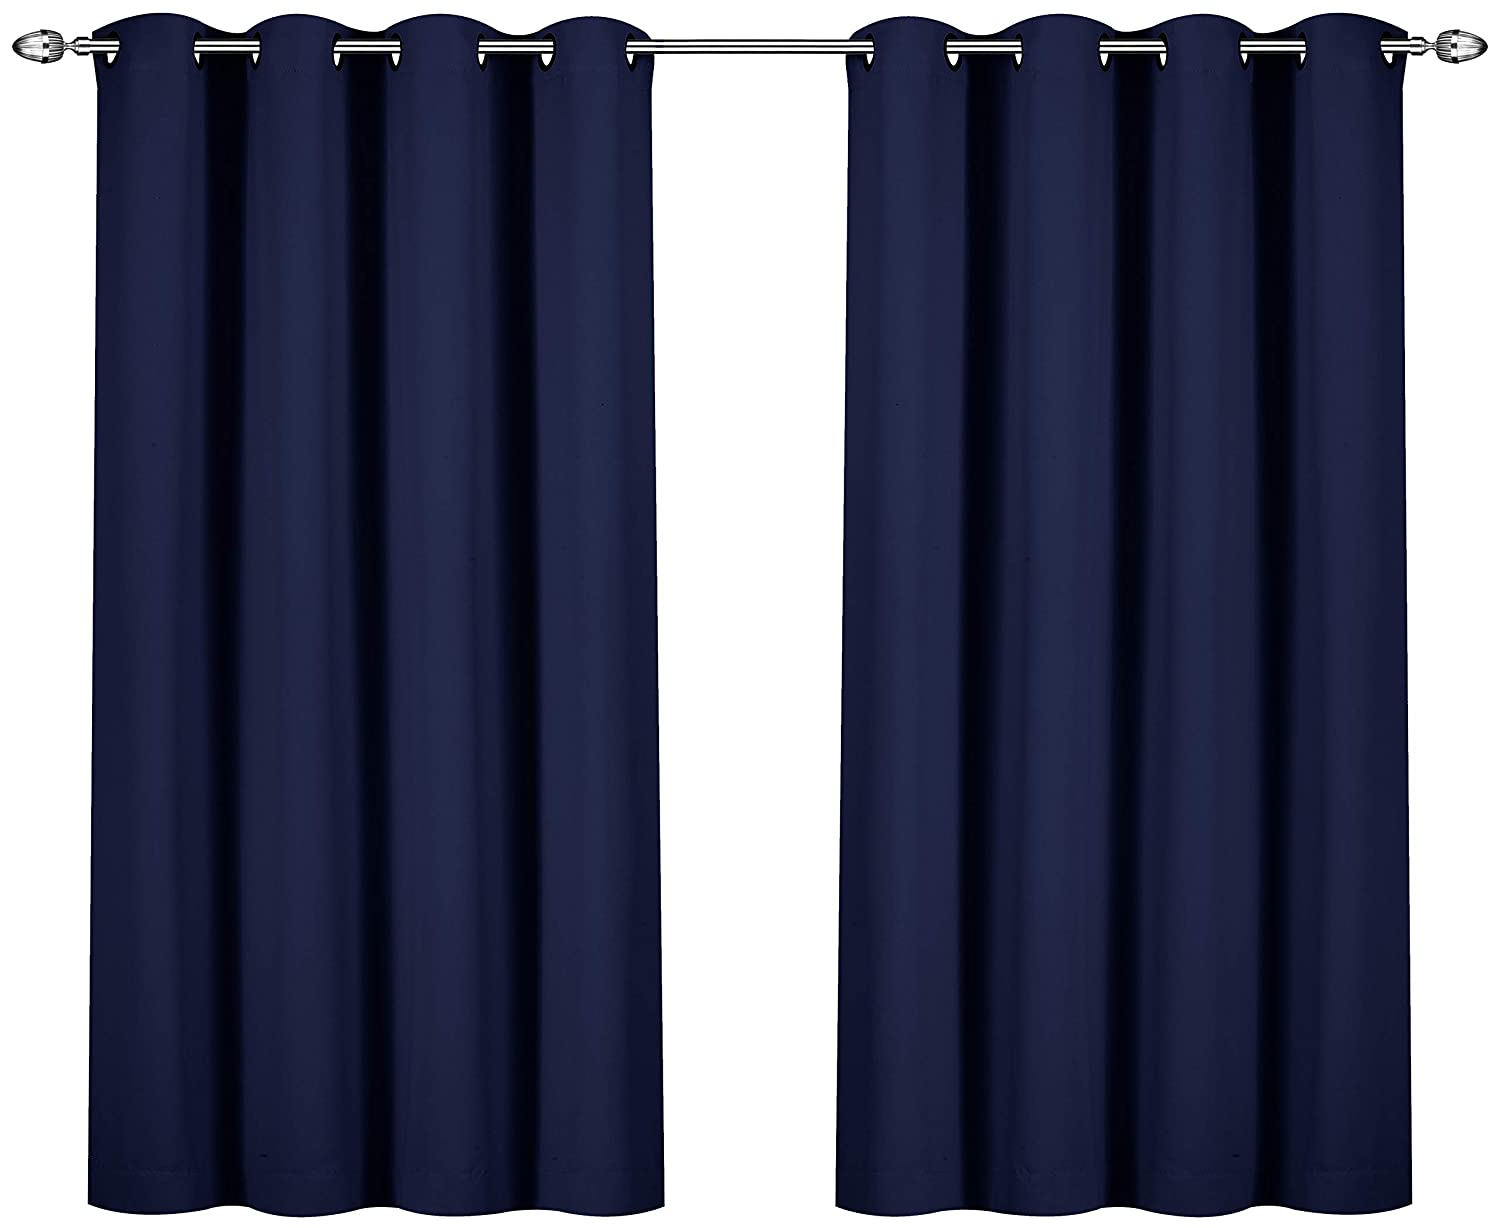 Utopia Bedding Blackout Room Darkening and Thermal Insulating Window Curtains/Panels/Drapes - 2 Panels Set - 8 Grommets per Panel - 2 Tie Backs Included (Beige, 52 x 63 with Grommets) UB0109